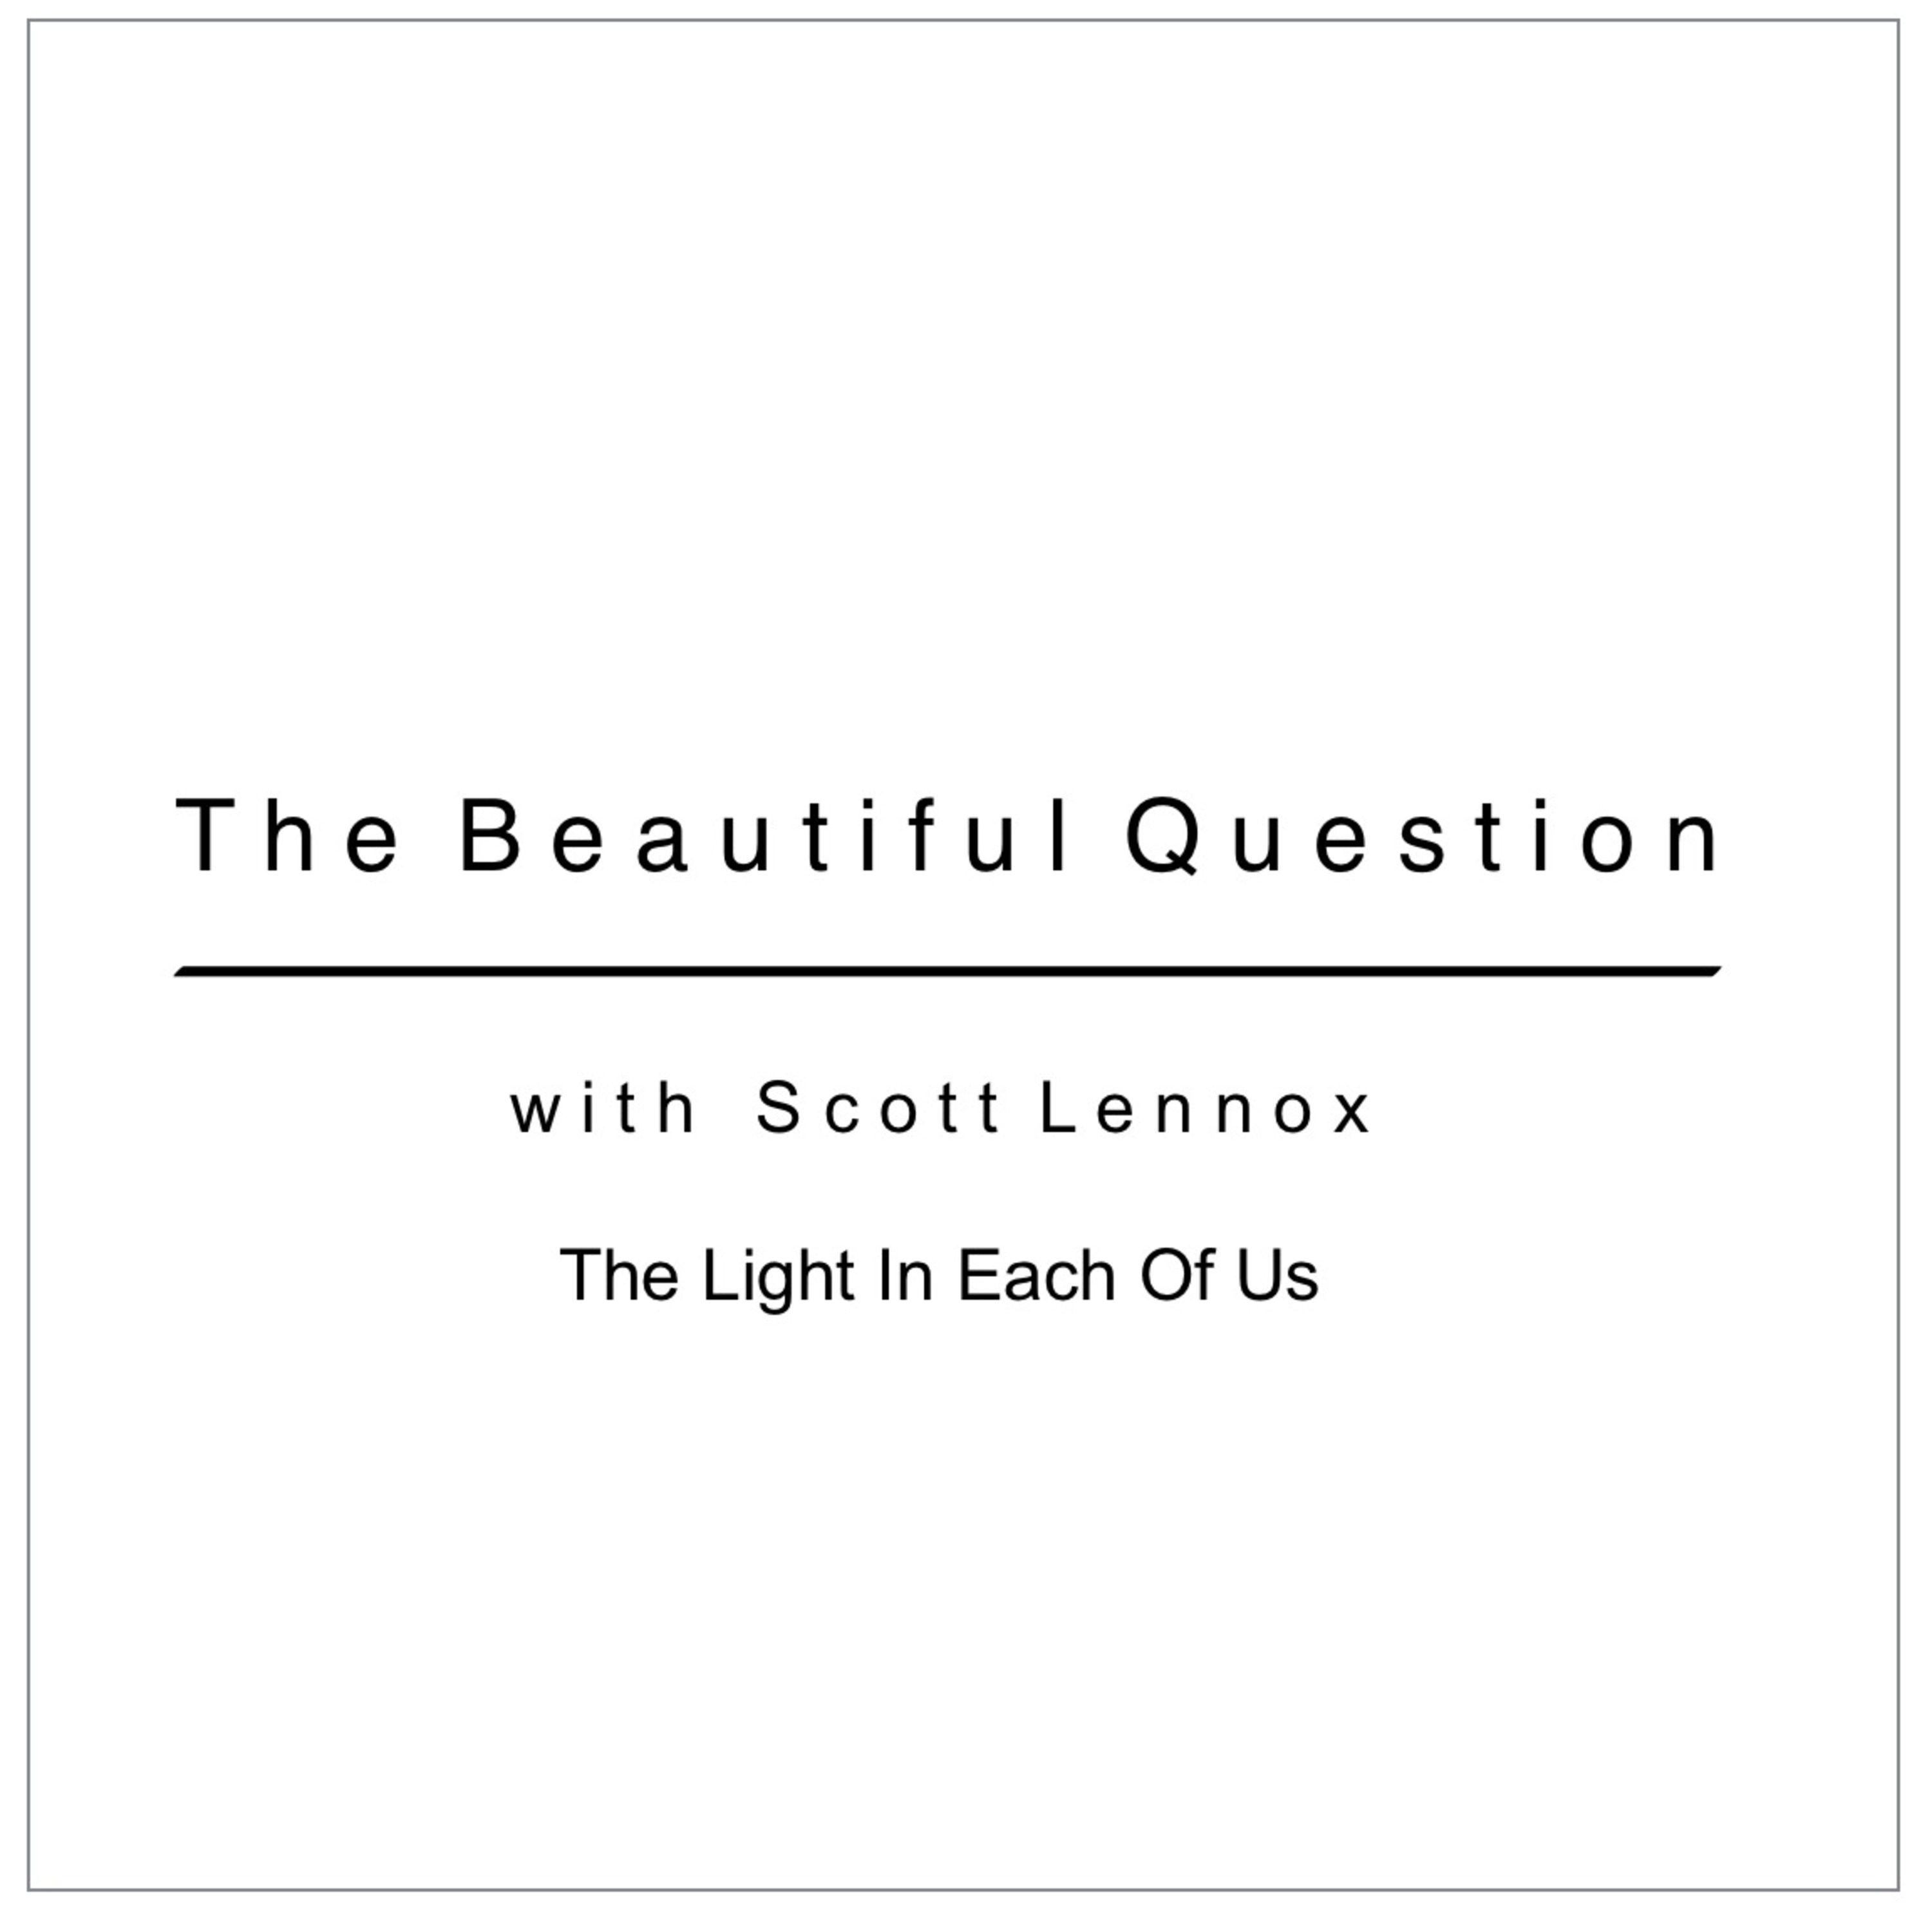 The Light In Each Of Us